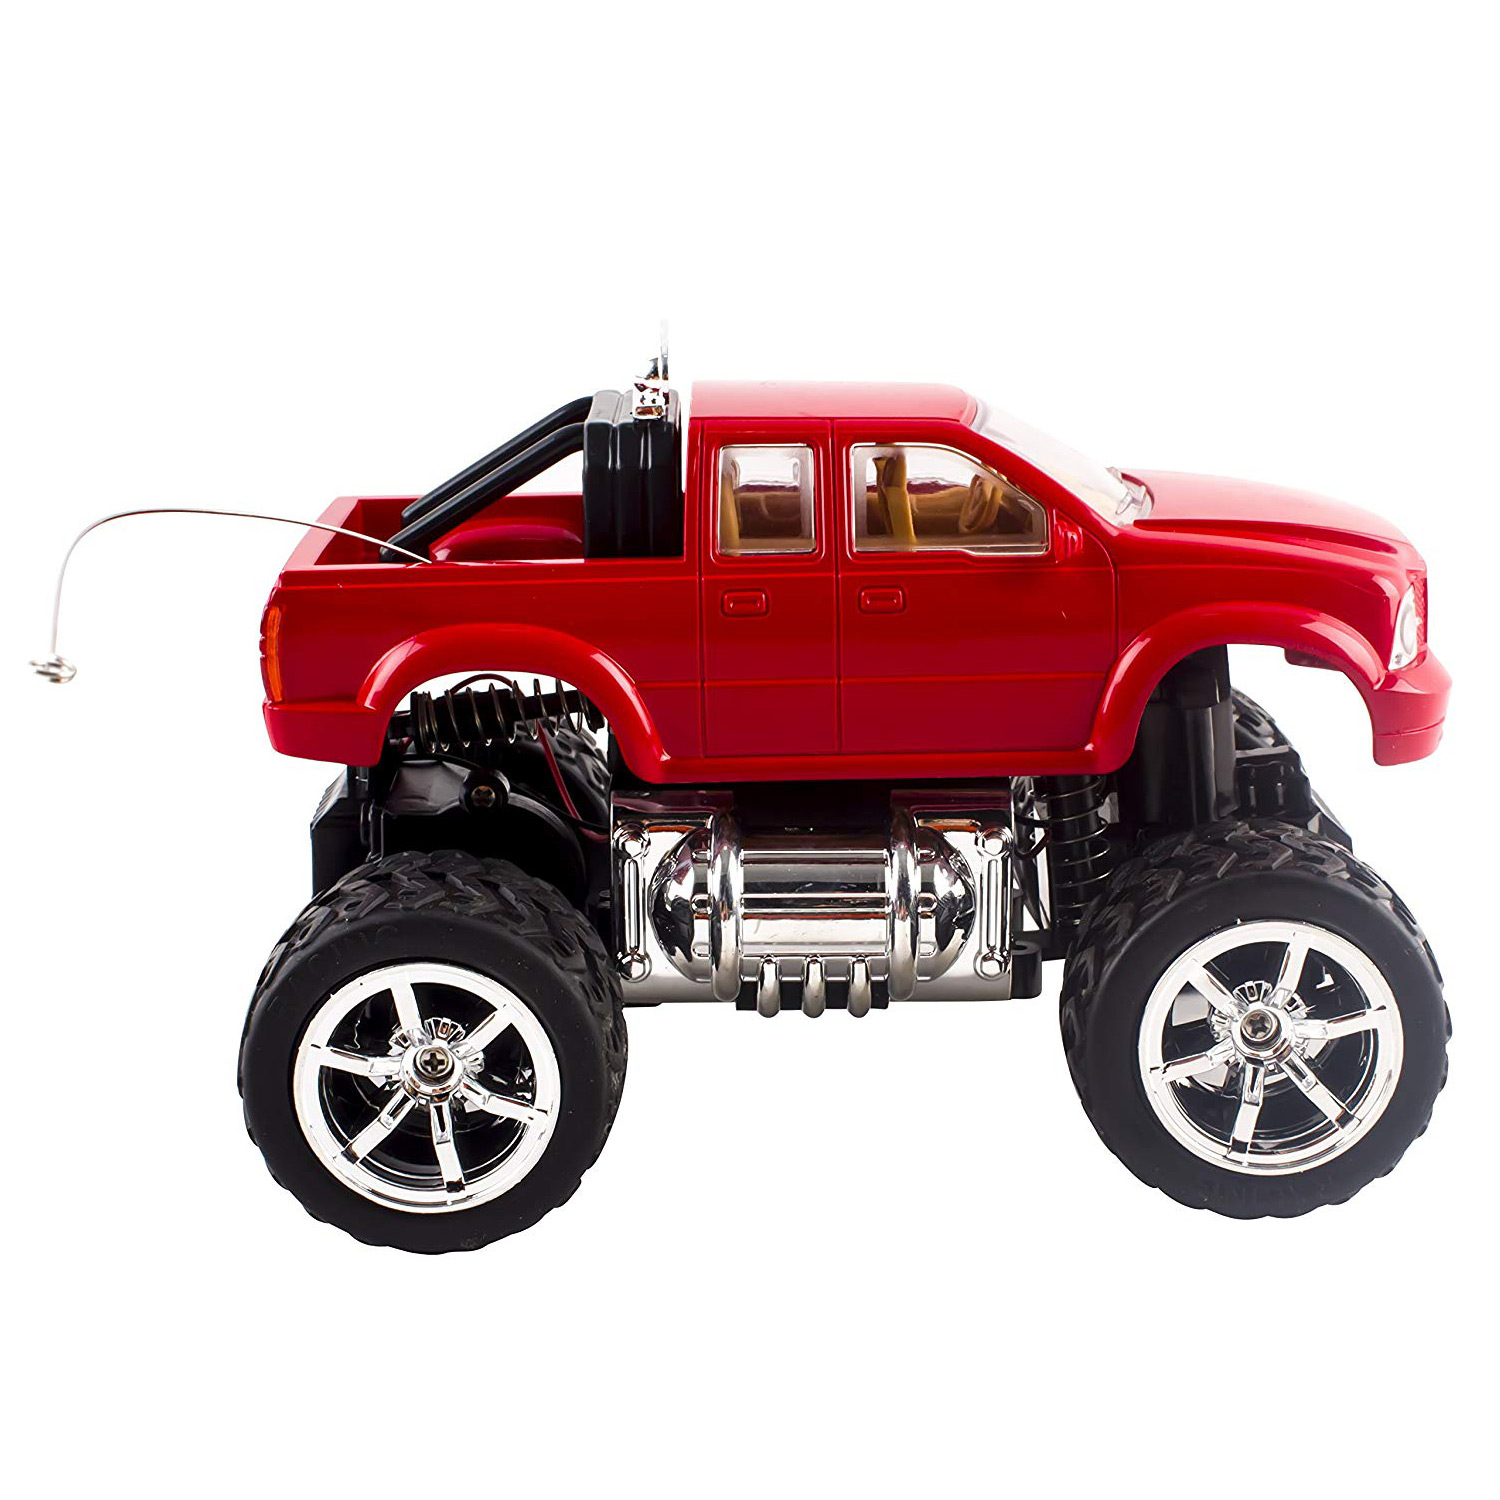 RC Truck Off-Road Series 120 Mini Scale Big Wheel Remote Control Car With LED Headlights Ready to Run Fast Nimble Handling Monster Trucks Beast Buggy Toy Red